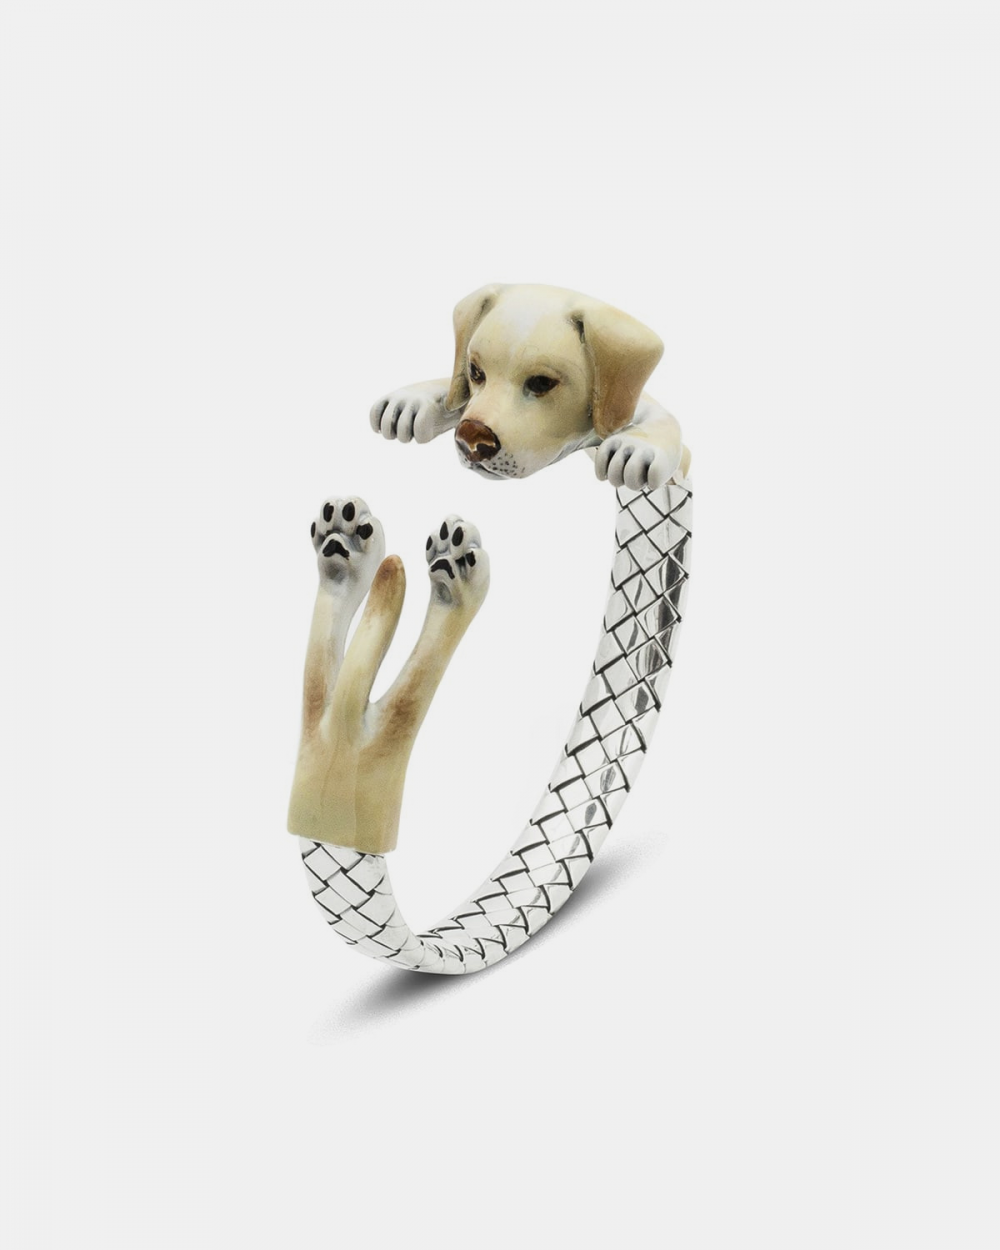 bracciale hug labrador retriever smalto